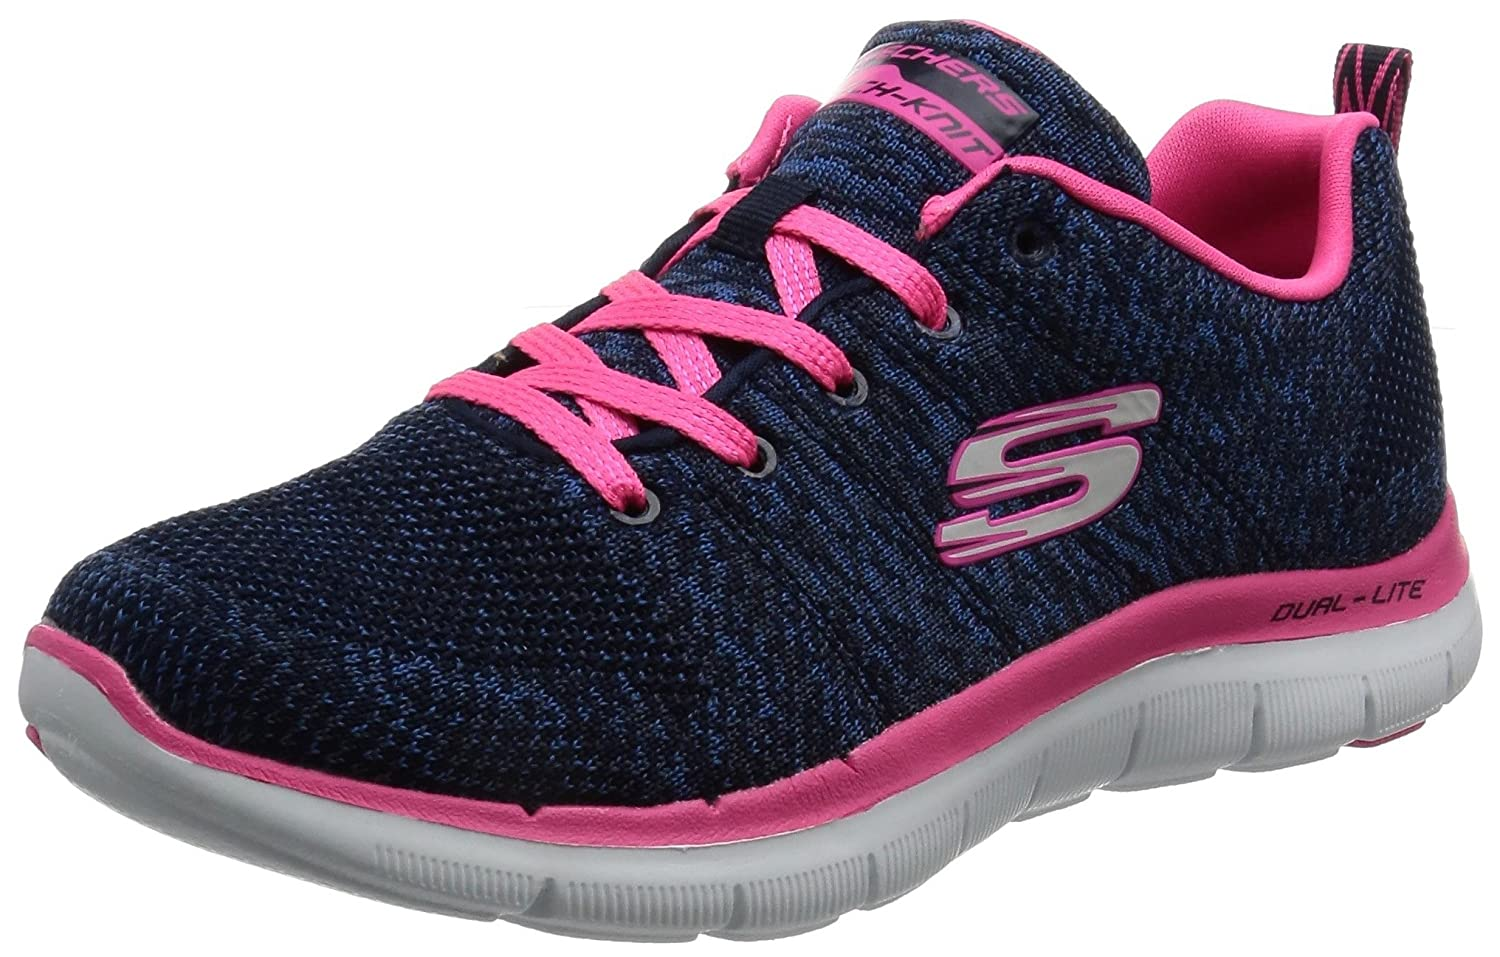 Skechers Flex Appeal 2.0 High Energy - Zapatillas Mujer 37.5 EU|Navy Pink